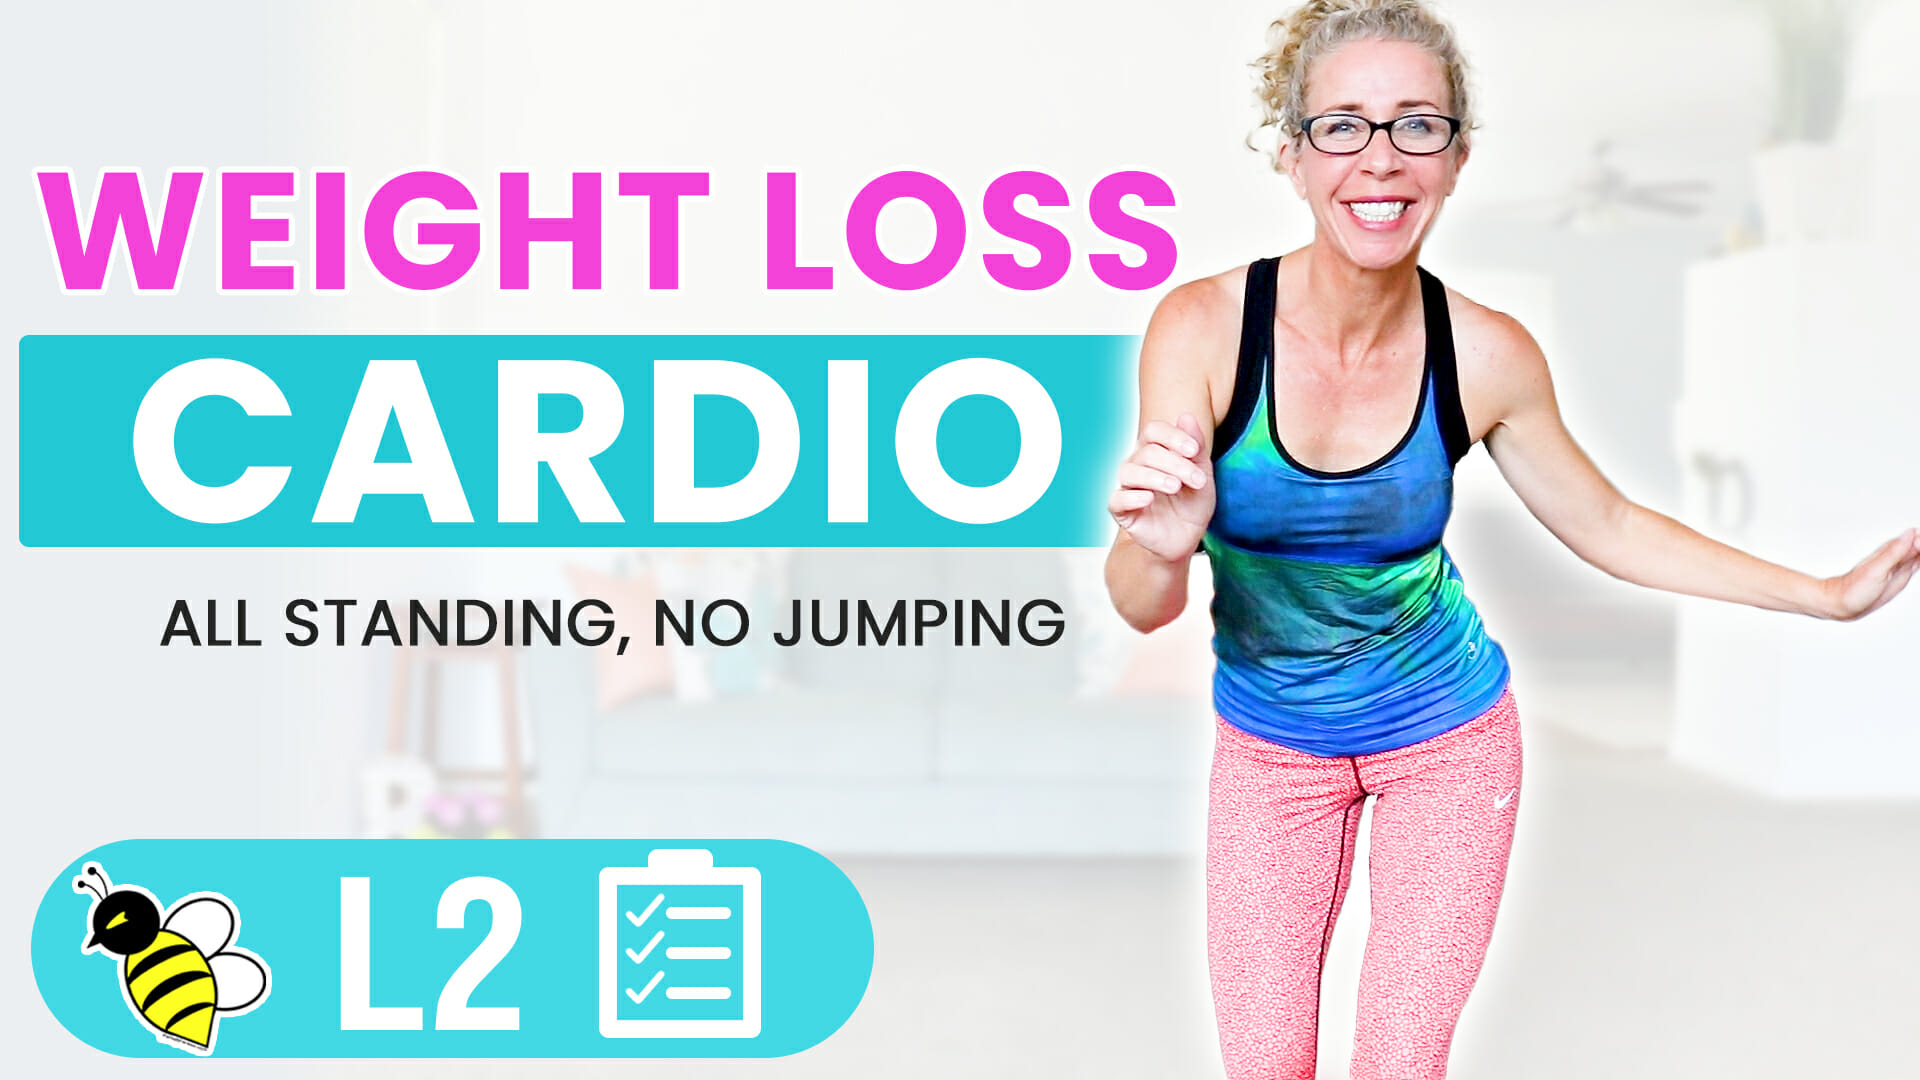 25 Minute Low Impact WEIGHT LOSS Cardio for Women Over 50